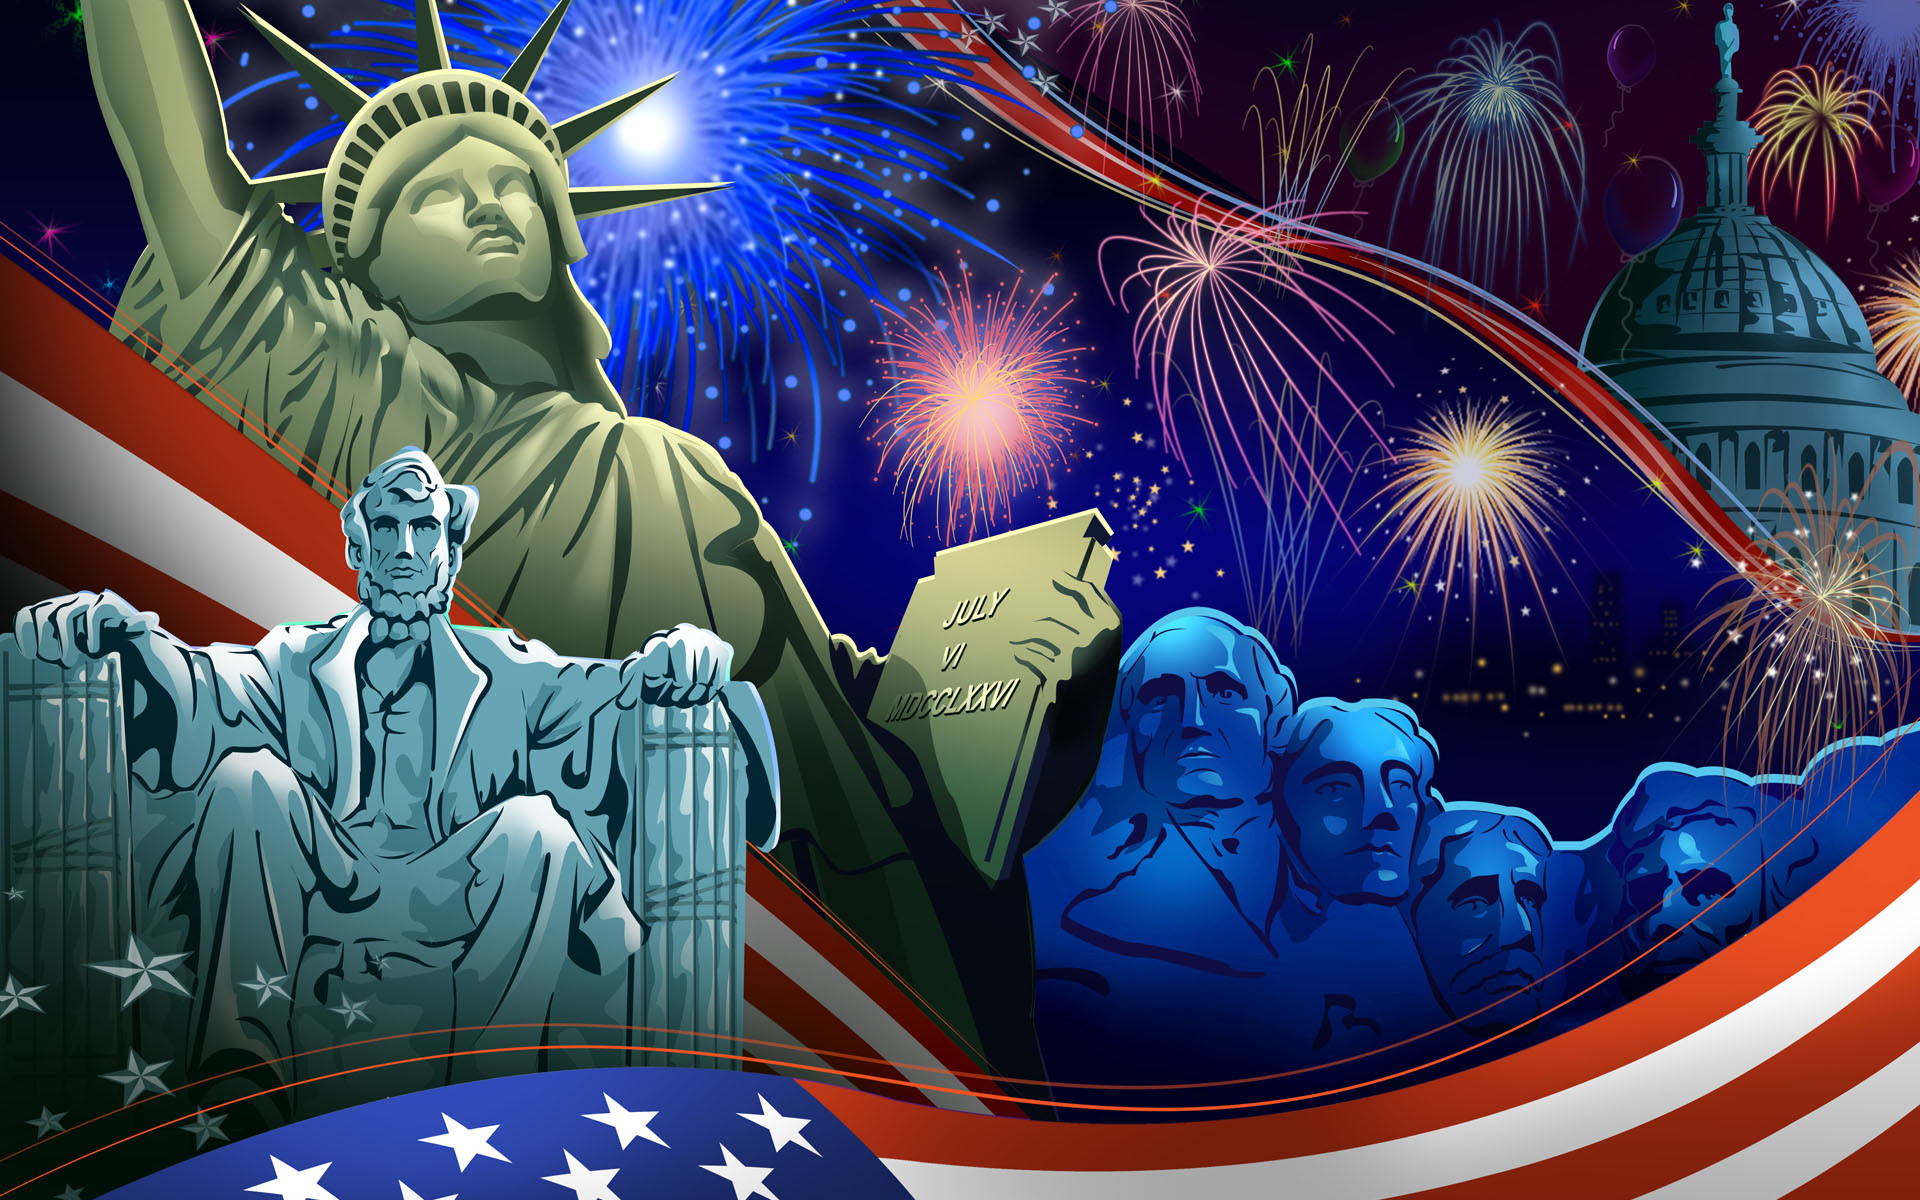 HD Wallpaper for 4th July Amazing 4th July Screensavers Free Download